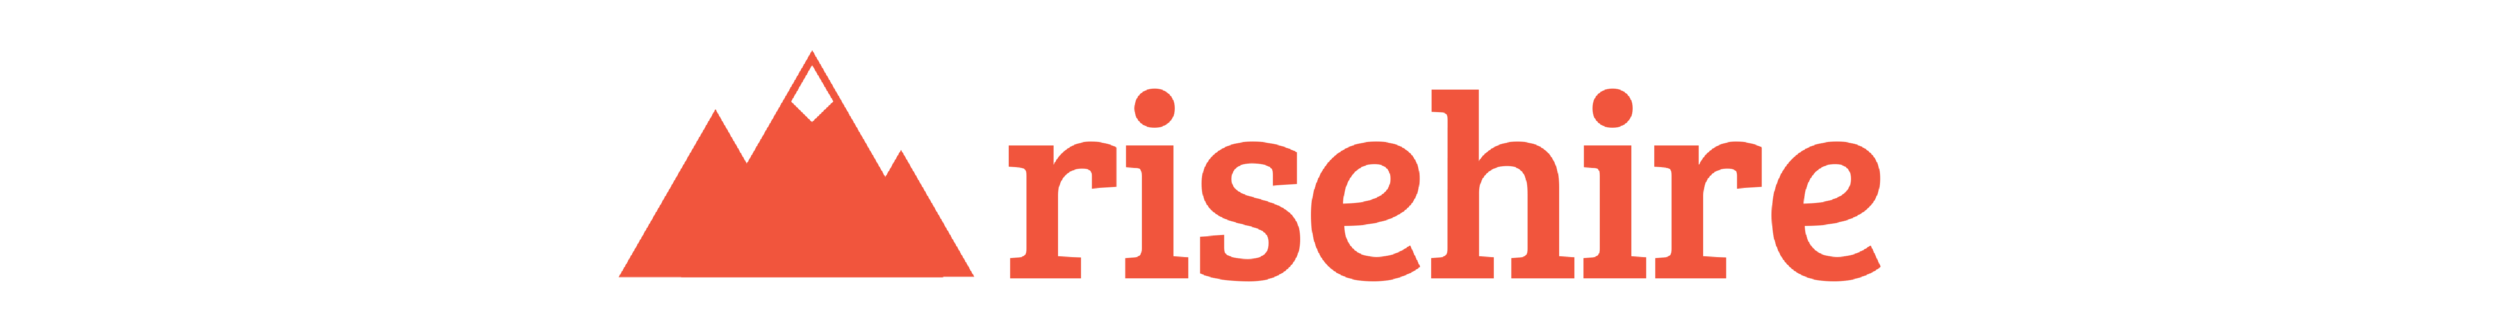 risehire-logo-full-tomato header footer-01.png